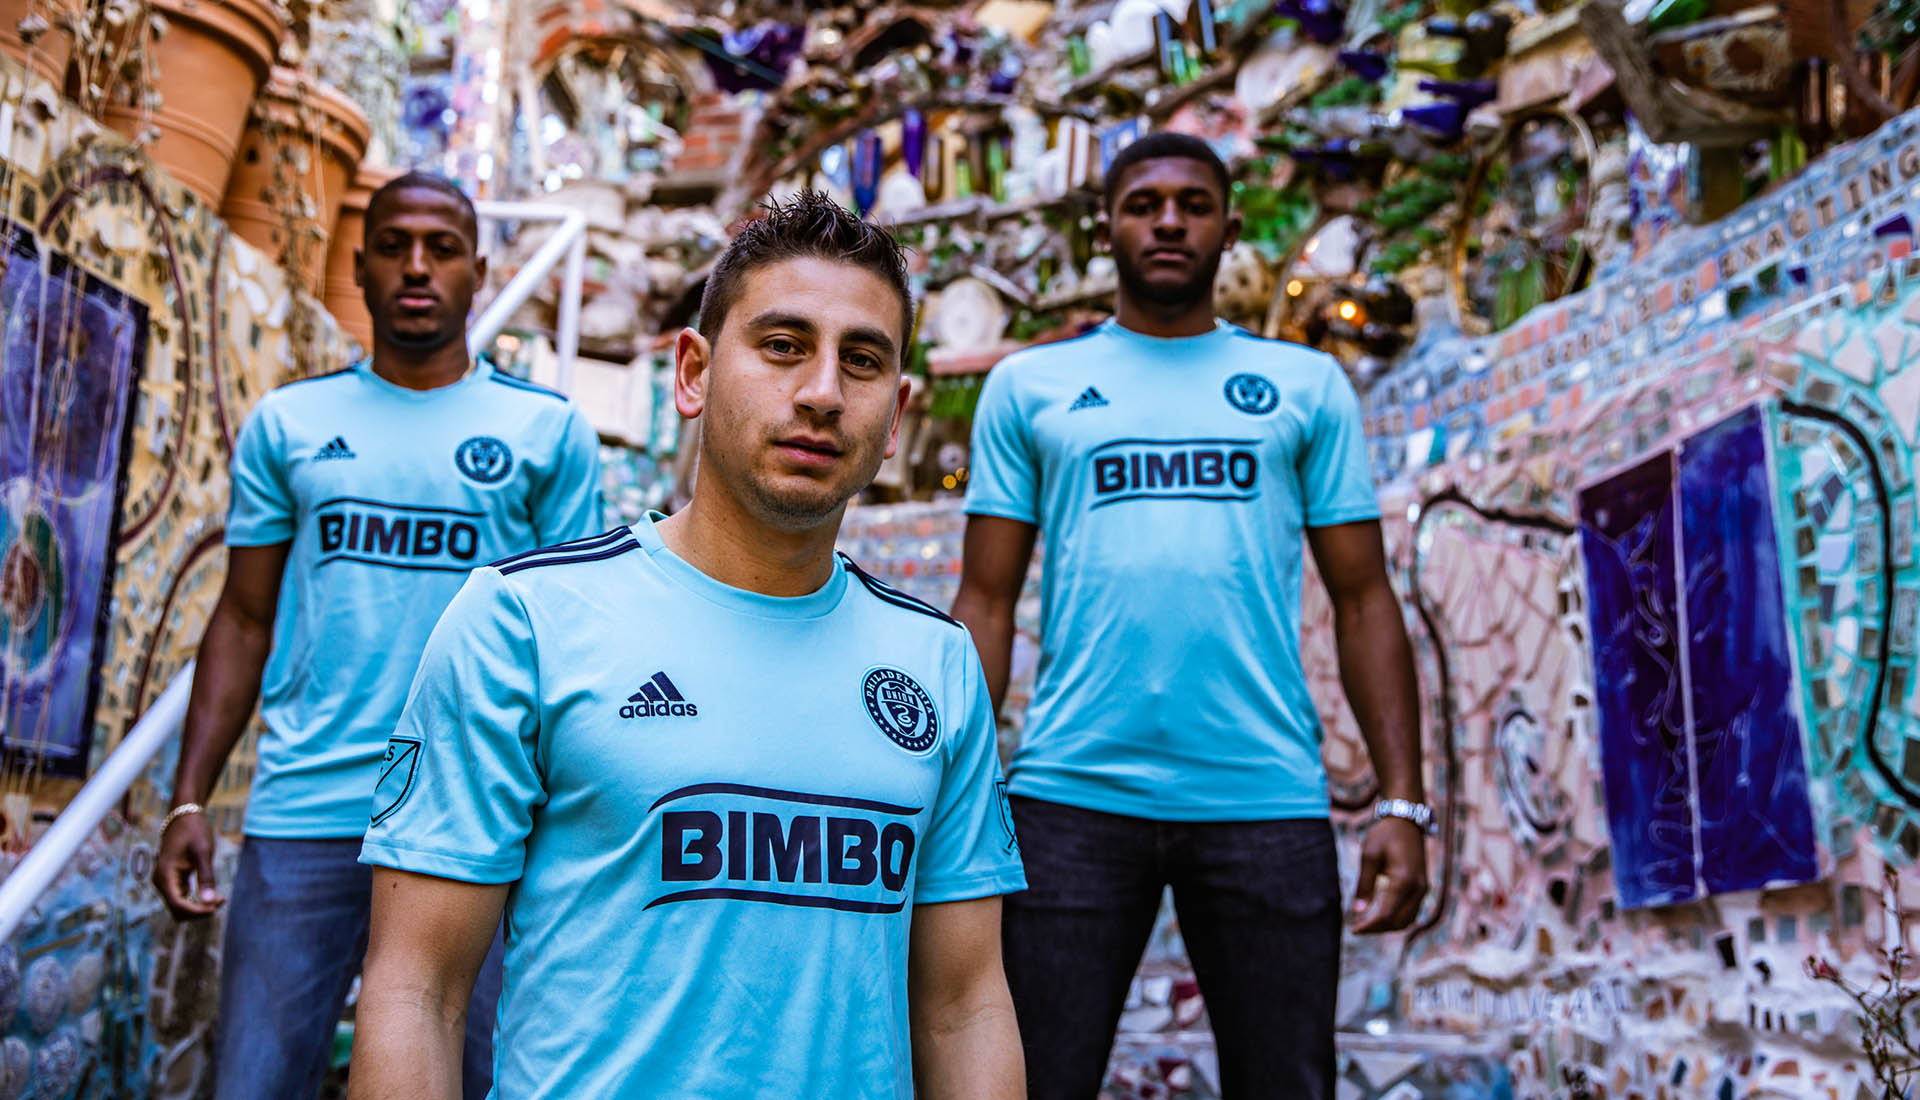 best loved 6208d f47c1 Philadelphia Union Launch 2019 Parley x adidas 3rd Jersey ...